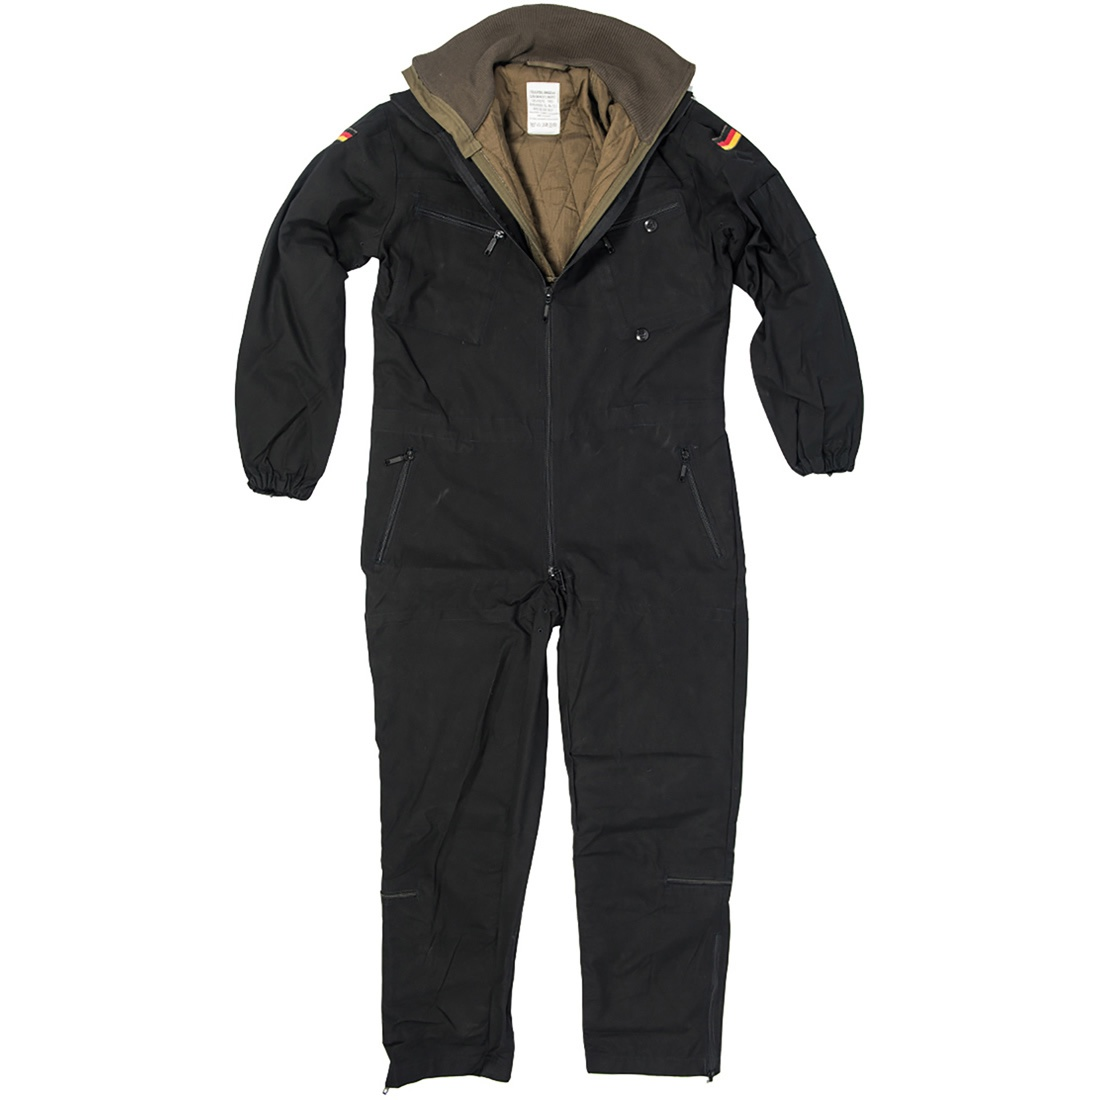 ca3d377e4be Mil-Tec German Army Tanksuit With Liner